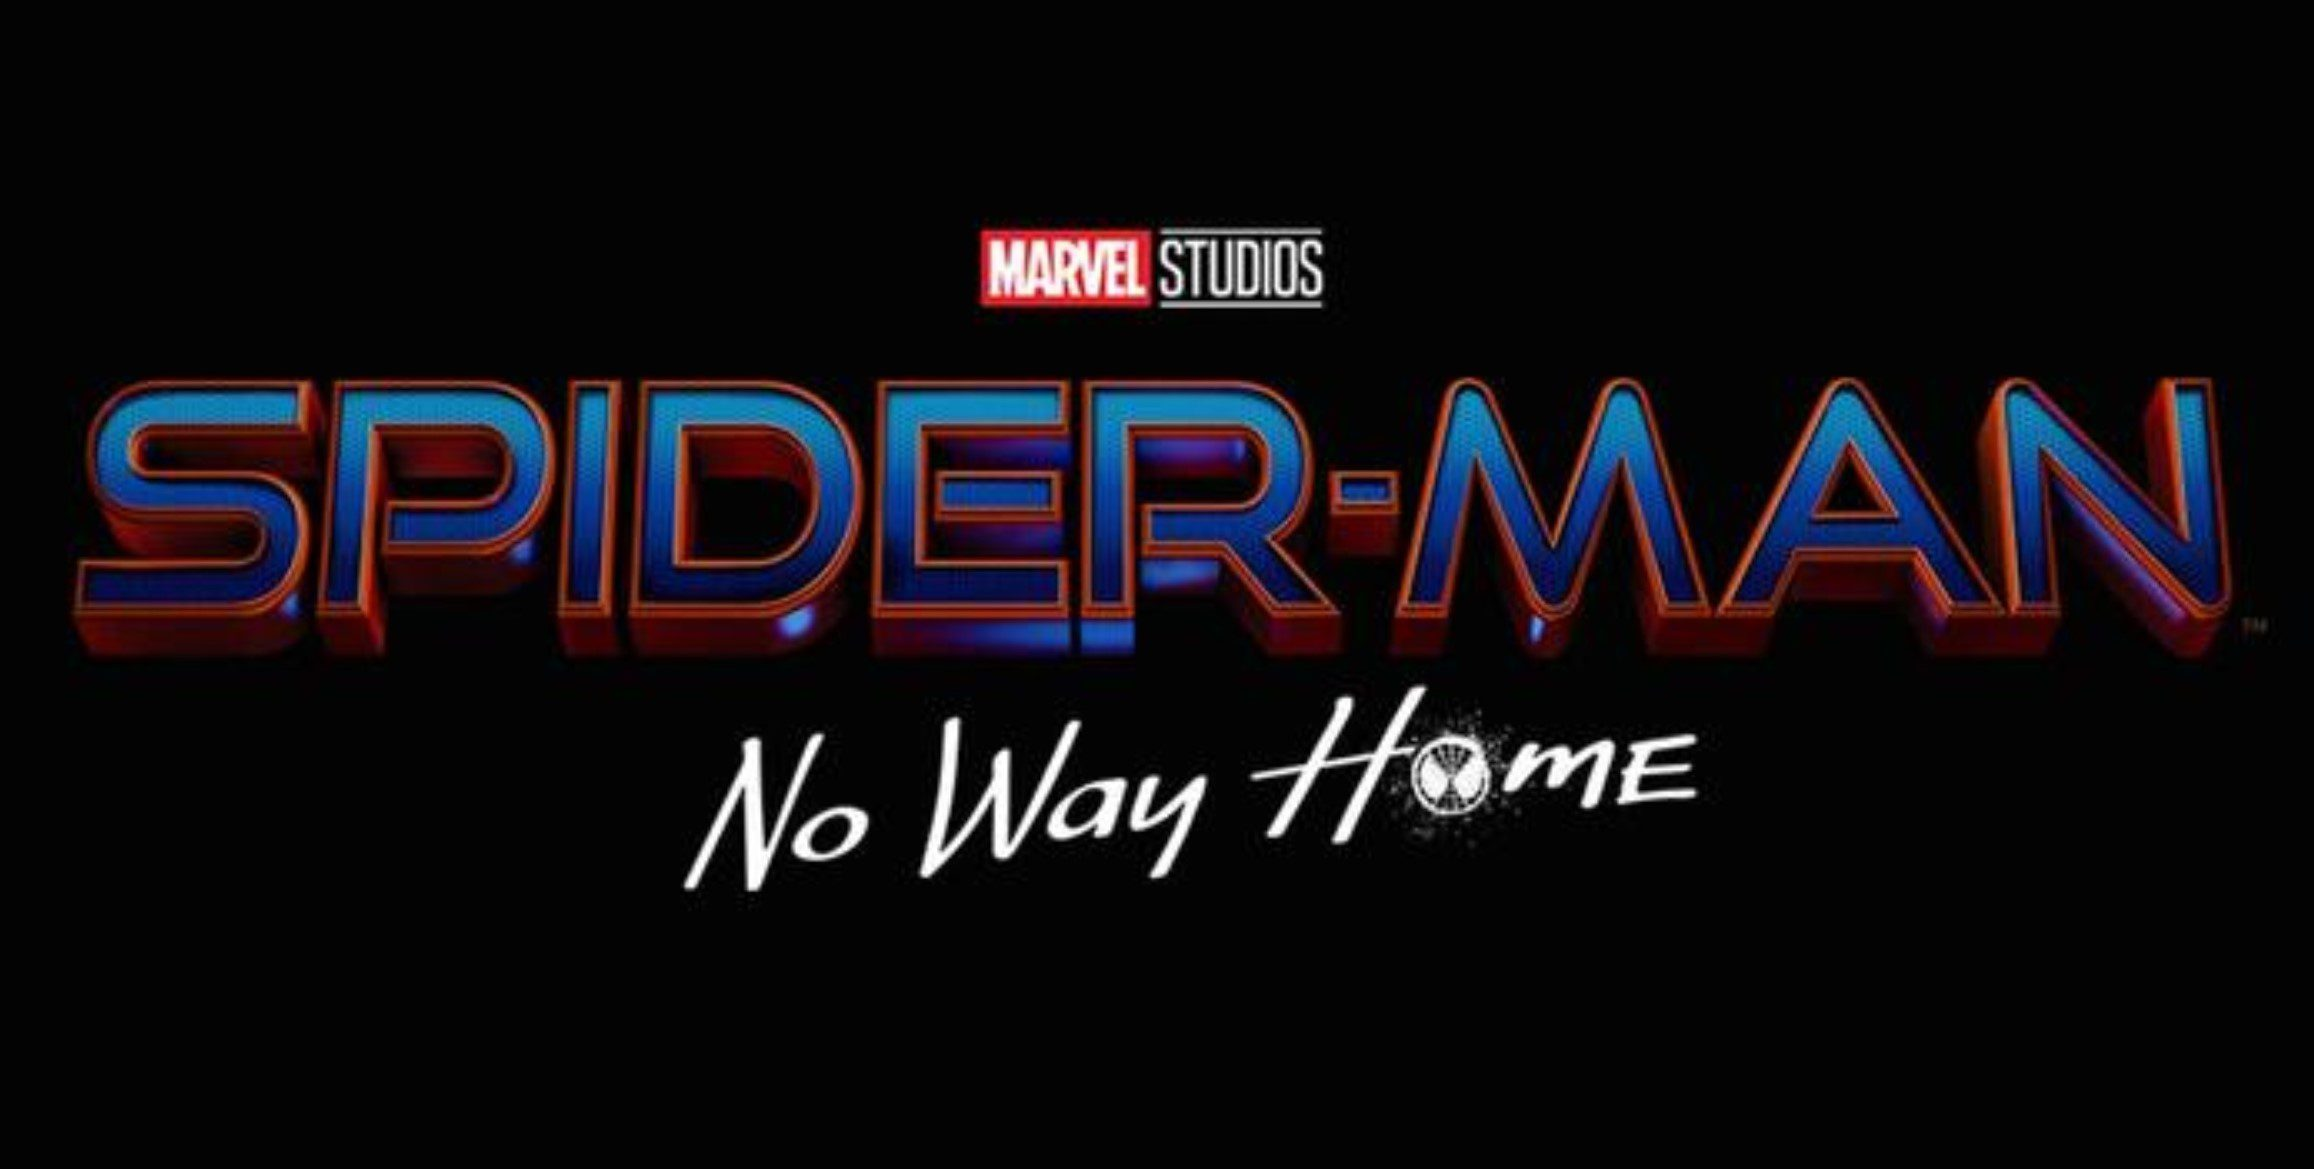 Third MCU Spider-Man film officially titled Spider-Man: No Way Home